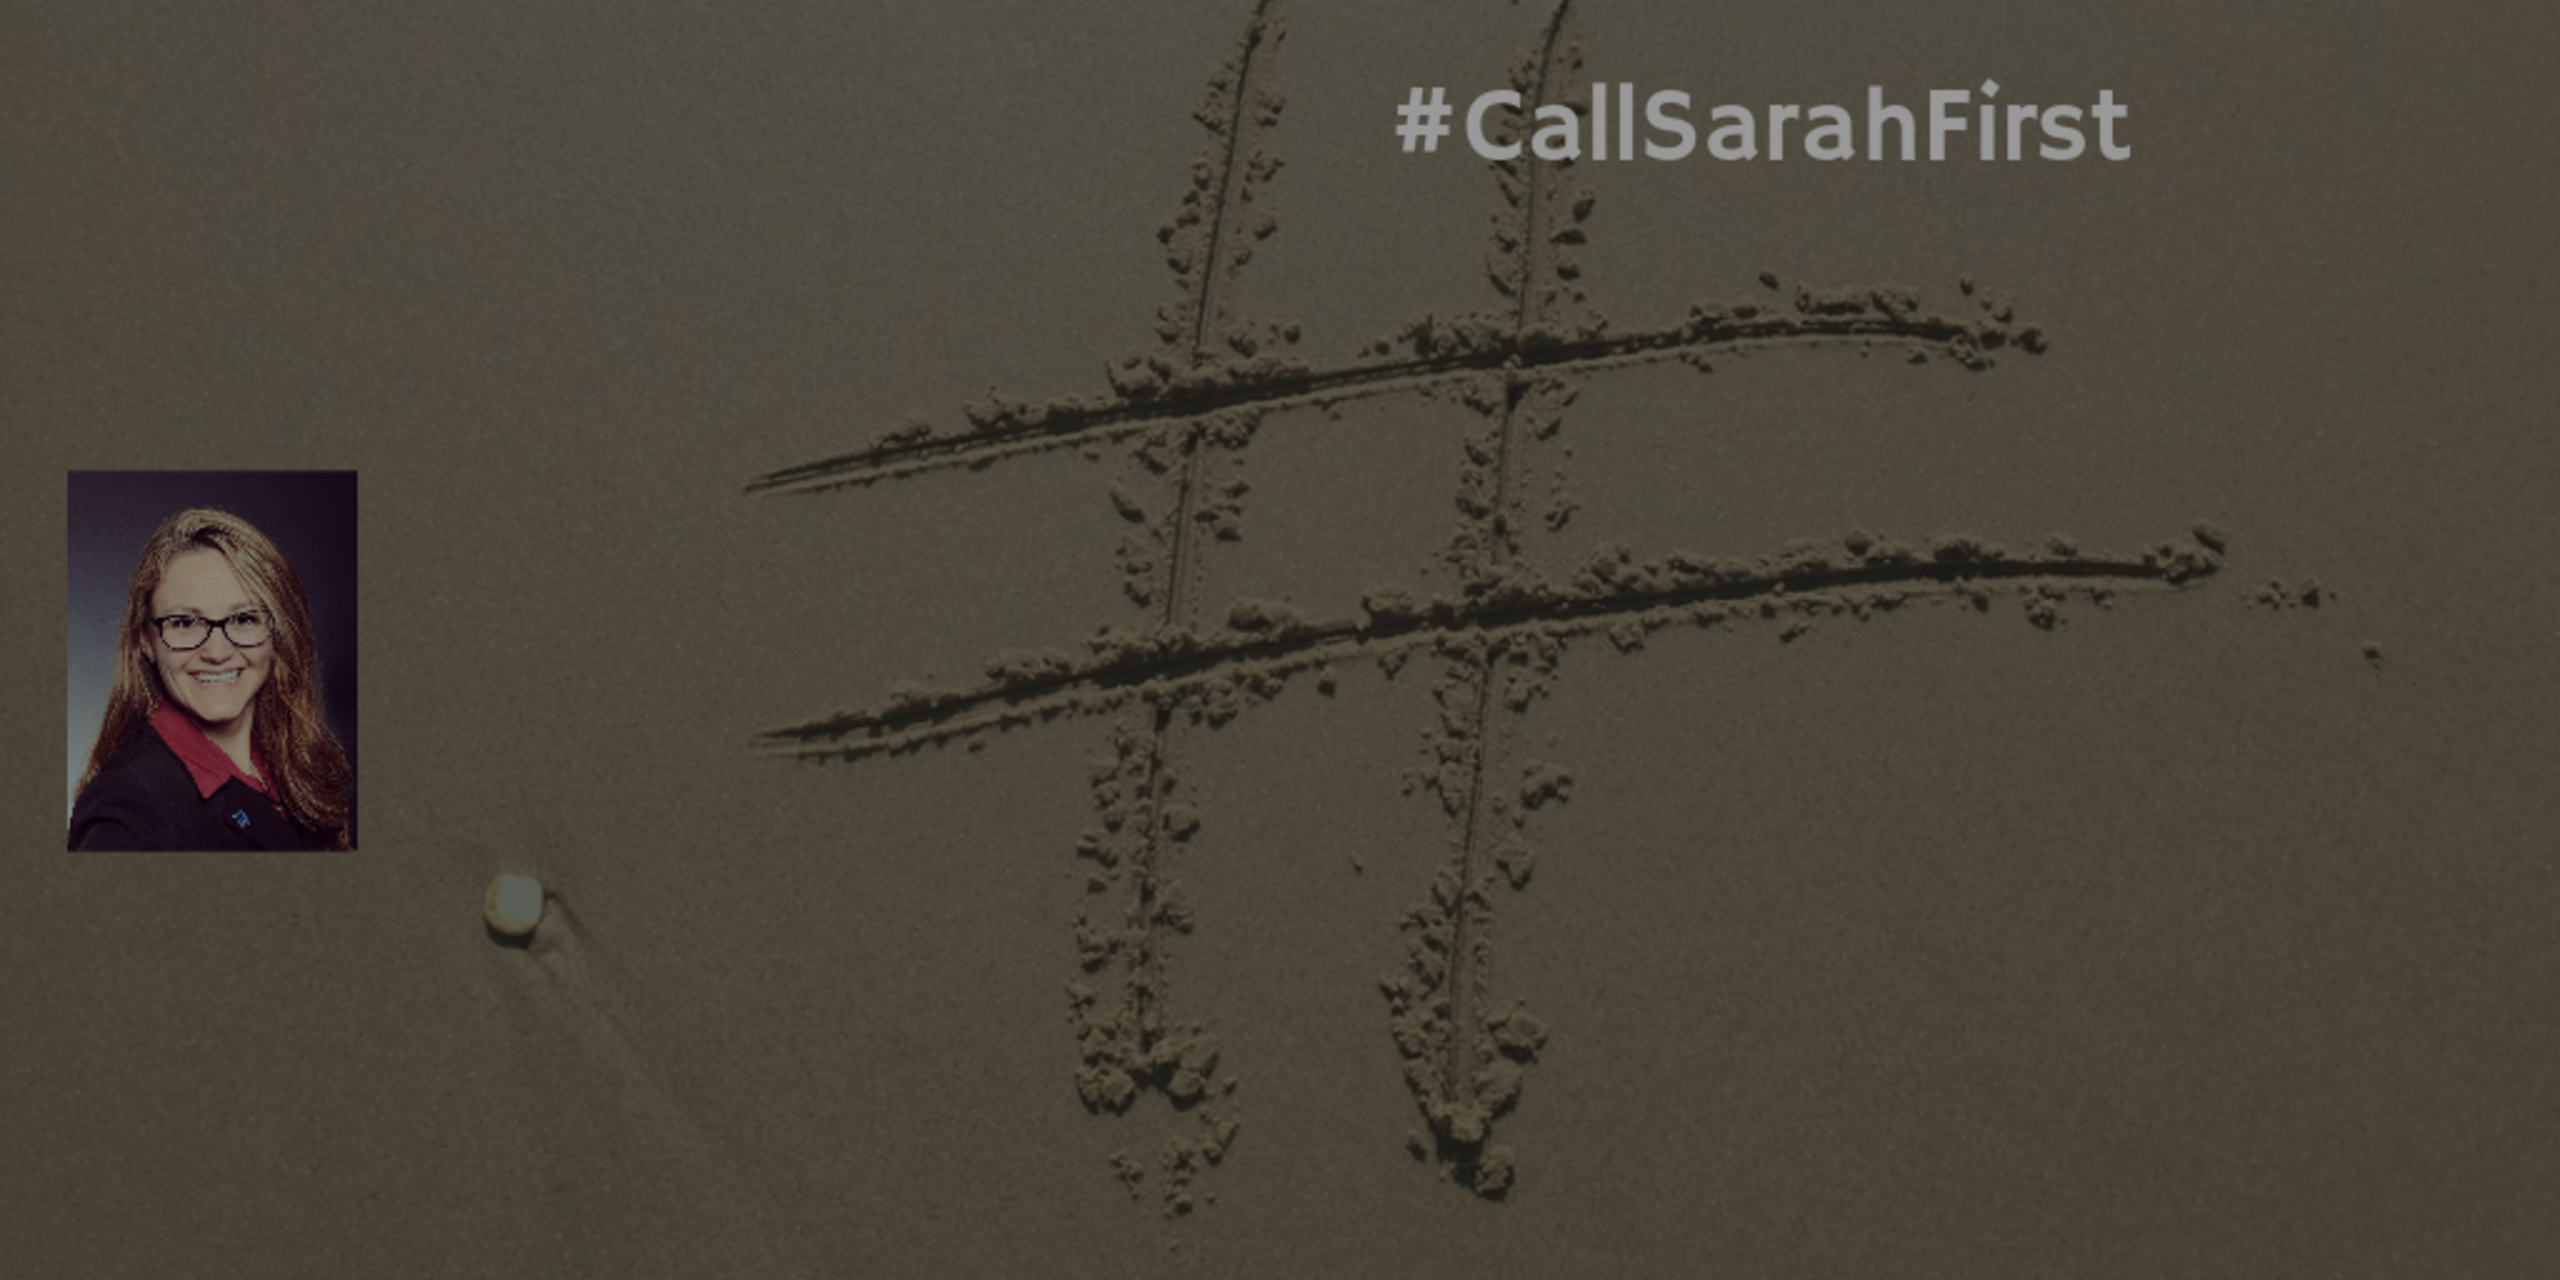 2020 New Year Call Sarah First Hashtag Contest